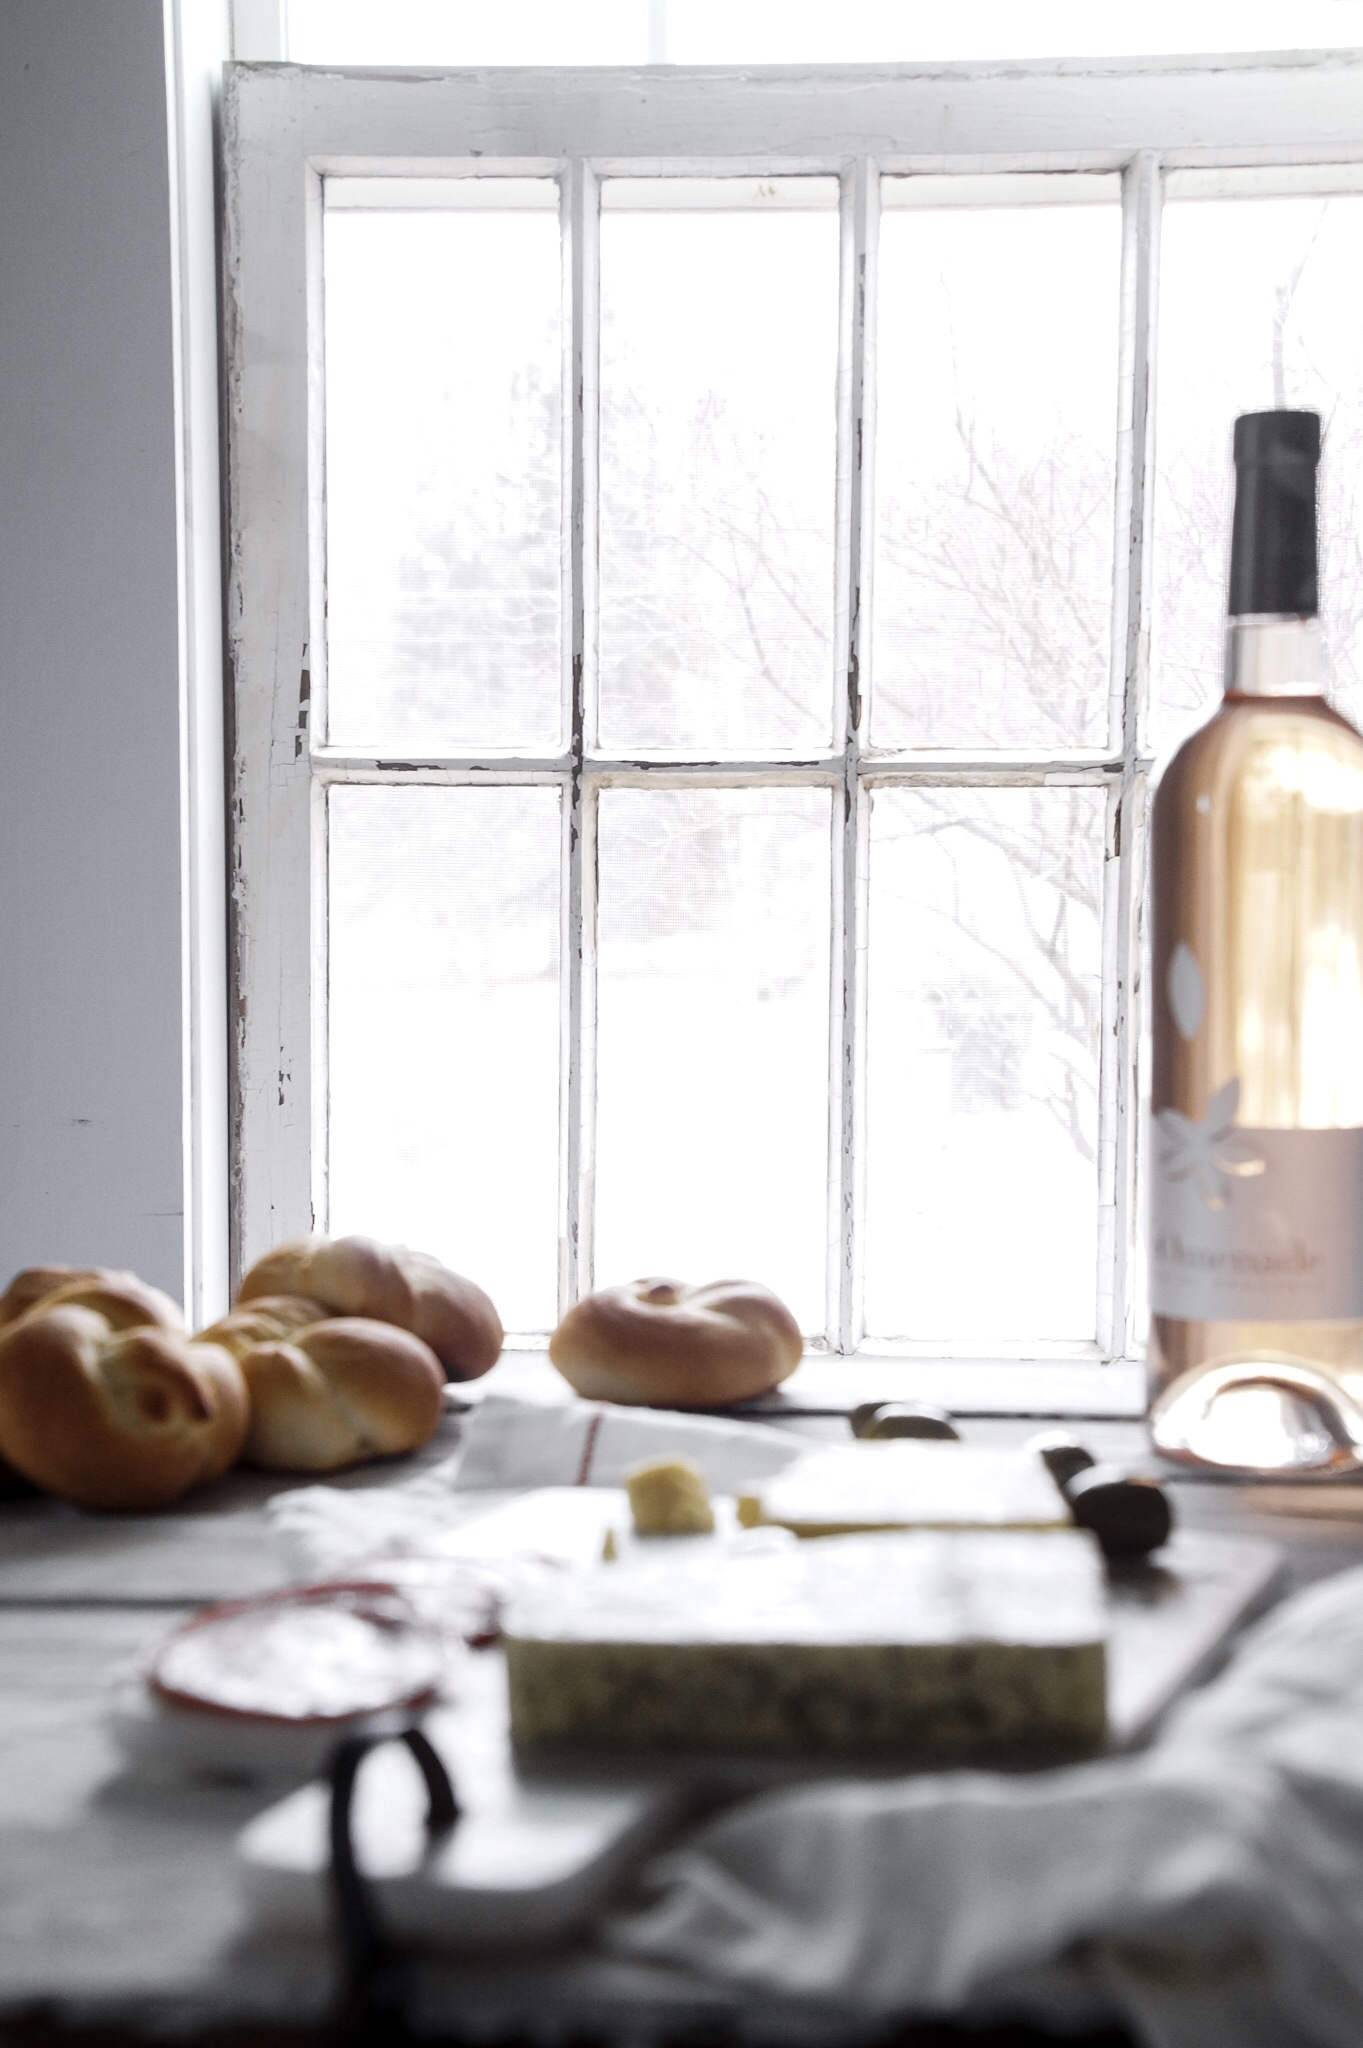 We love to have simple bread and cheese lunches paired with a nice wine. These milk buns hit the spot.